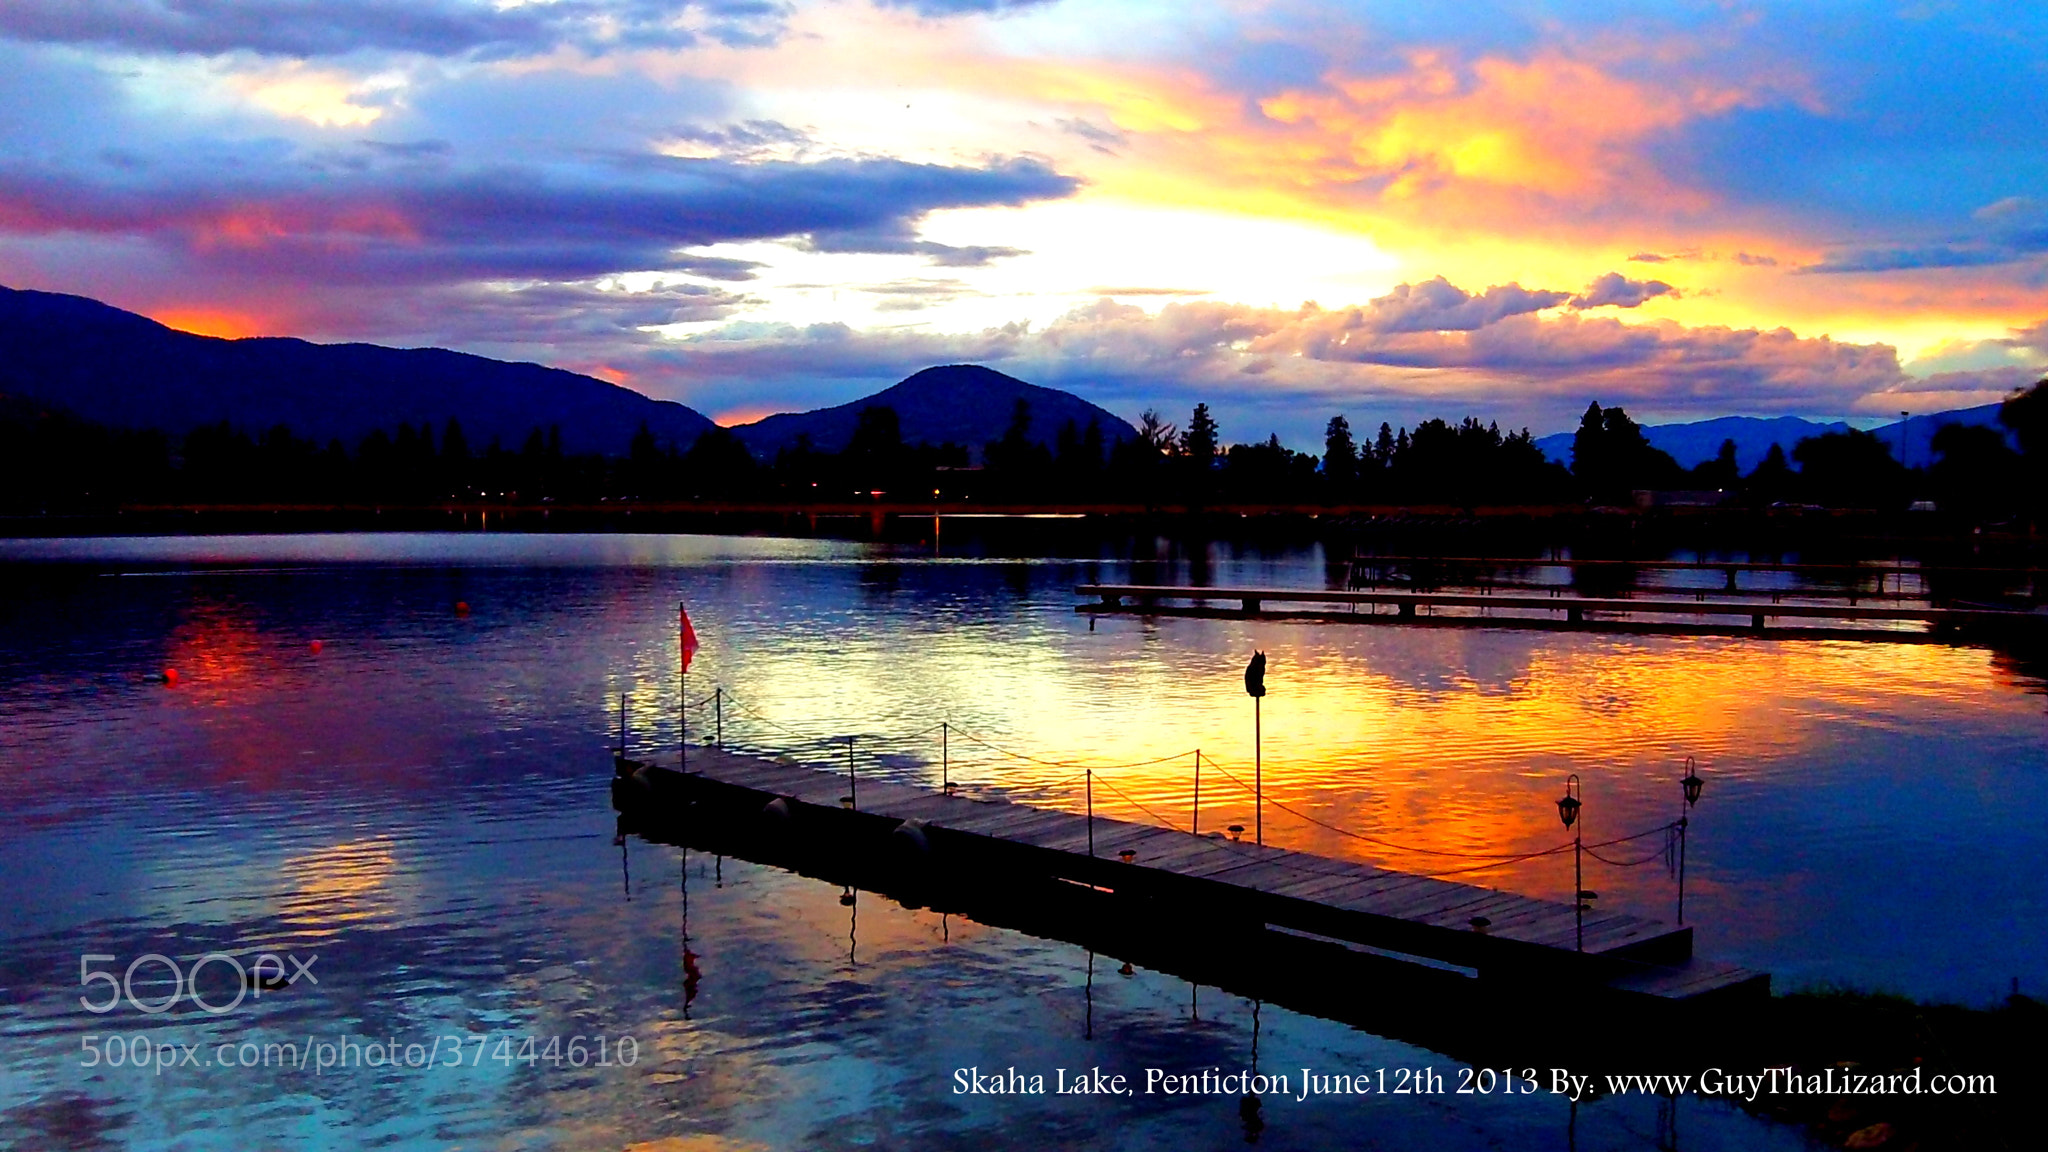 Photograph Skaha Lake Sunset June12,2013 by Guy Hoffman on 500px